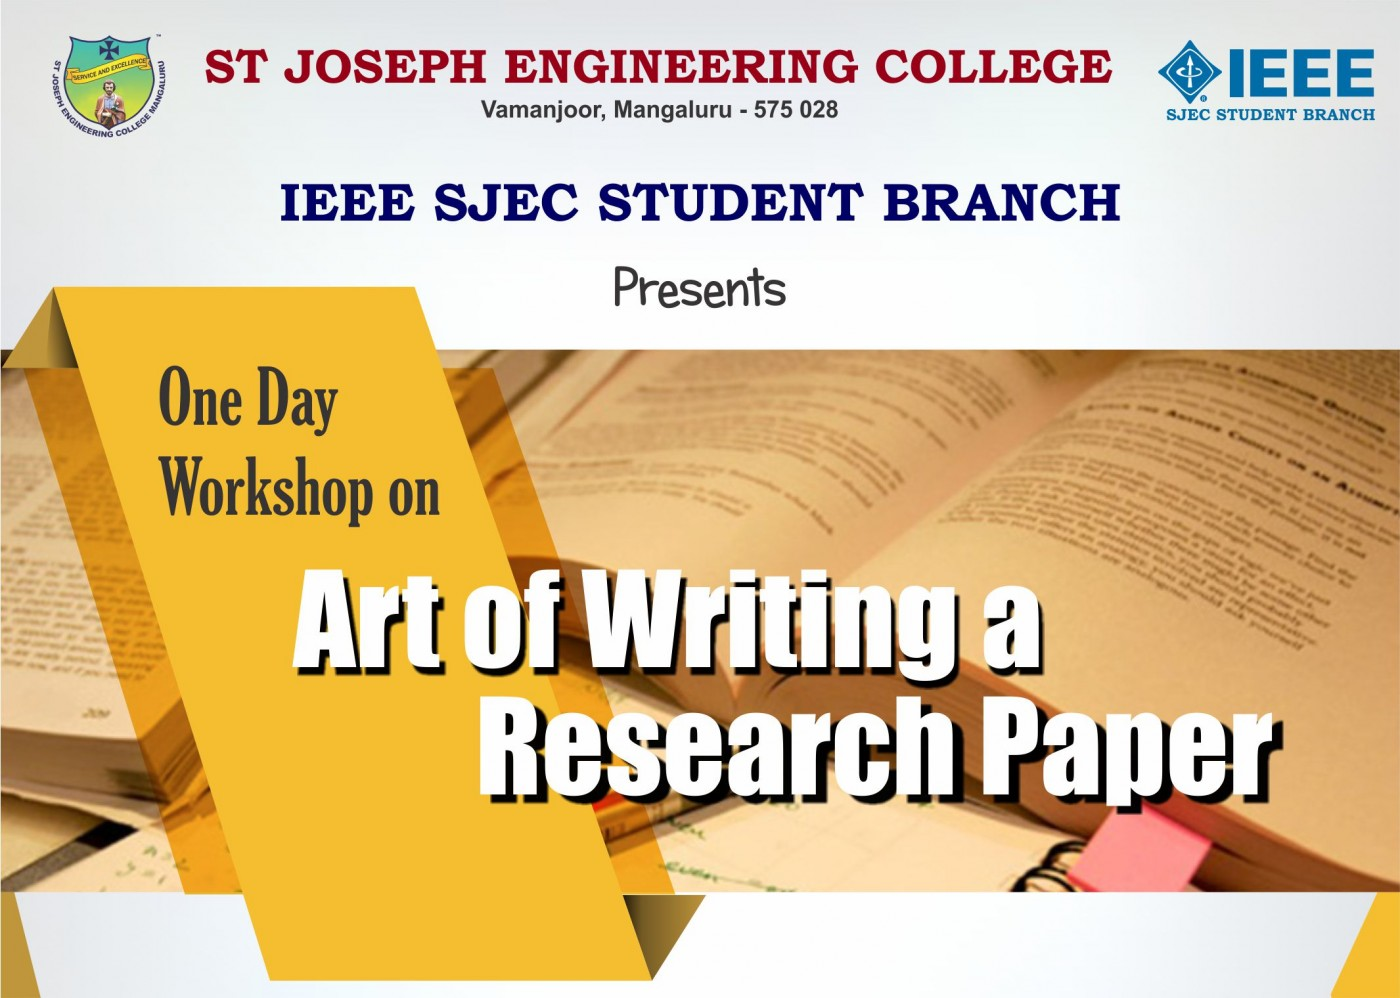 016 Writting Research Paper Workshop Dreaded A Example Of Proposal Apa Format Outline Writing Conclusion 1400